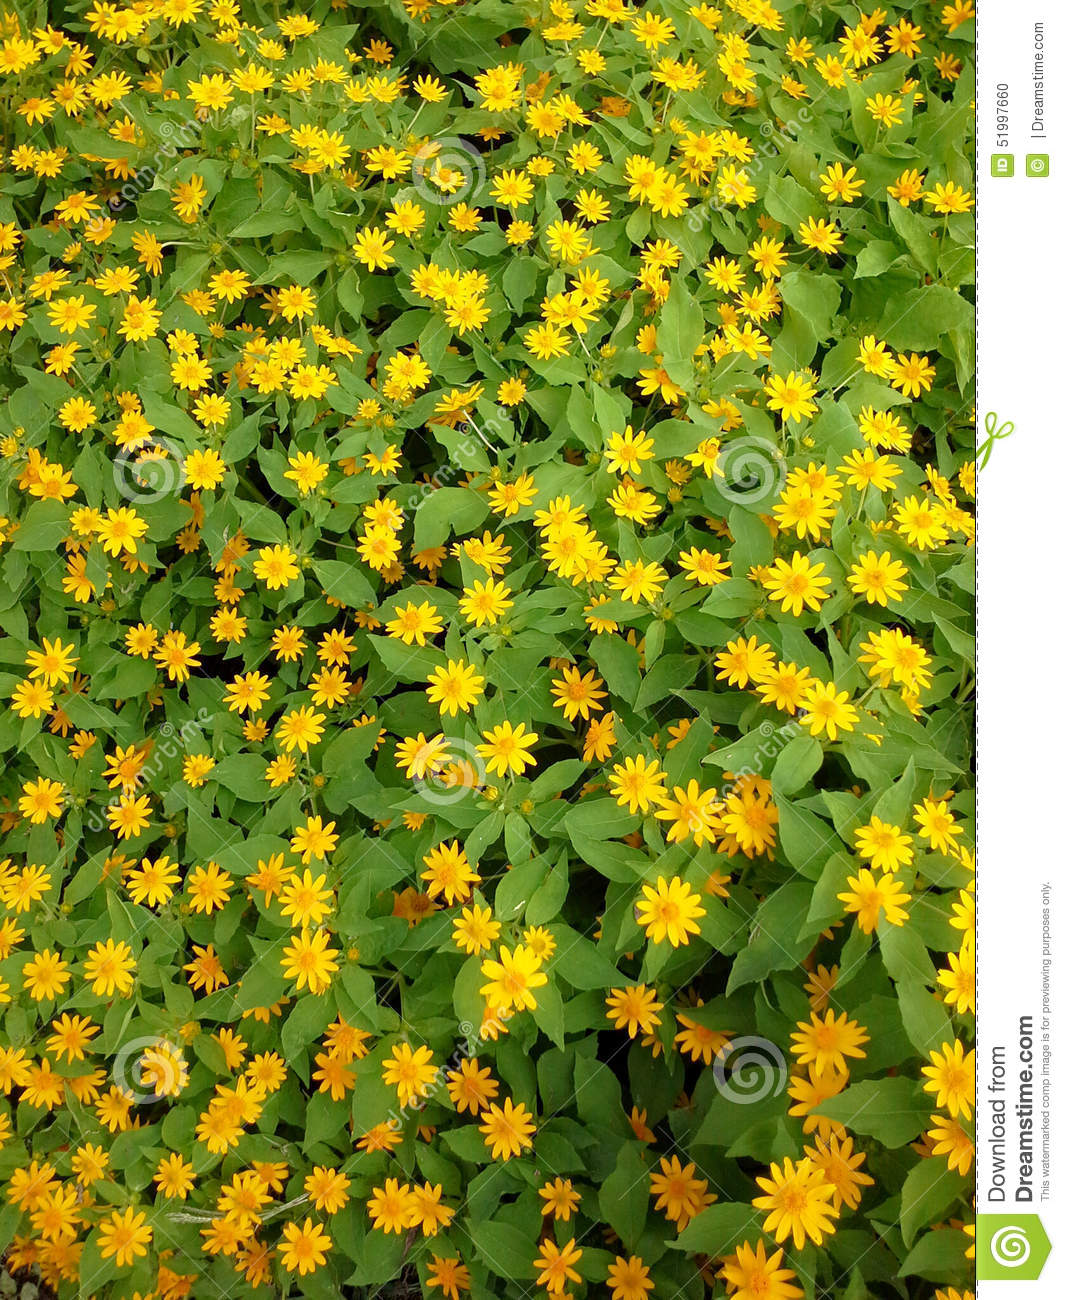 Yellow flower garden stock photo image of flower bloom 51997660 yellow flower garden mightylinksfo